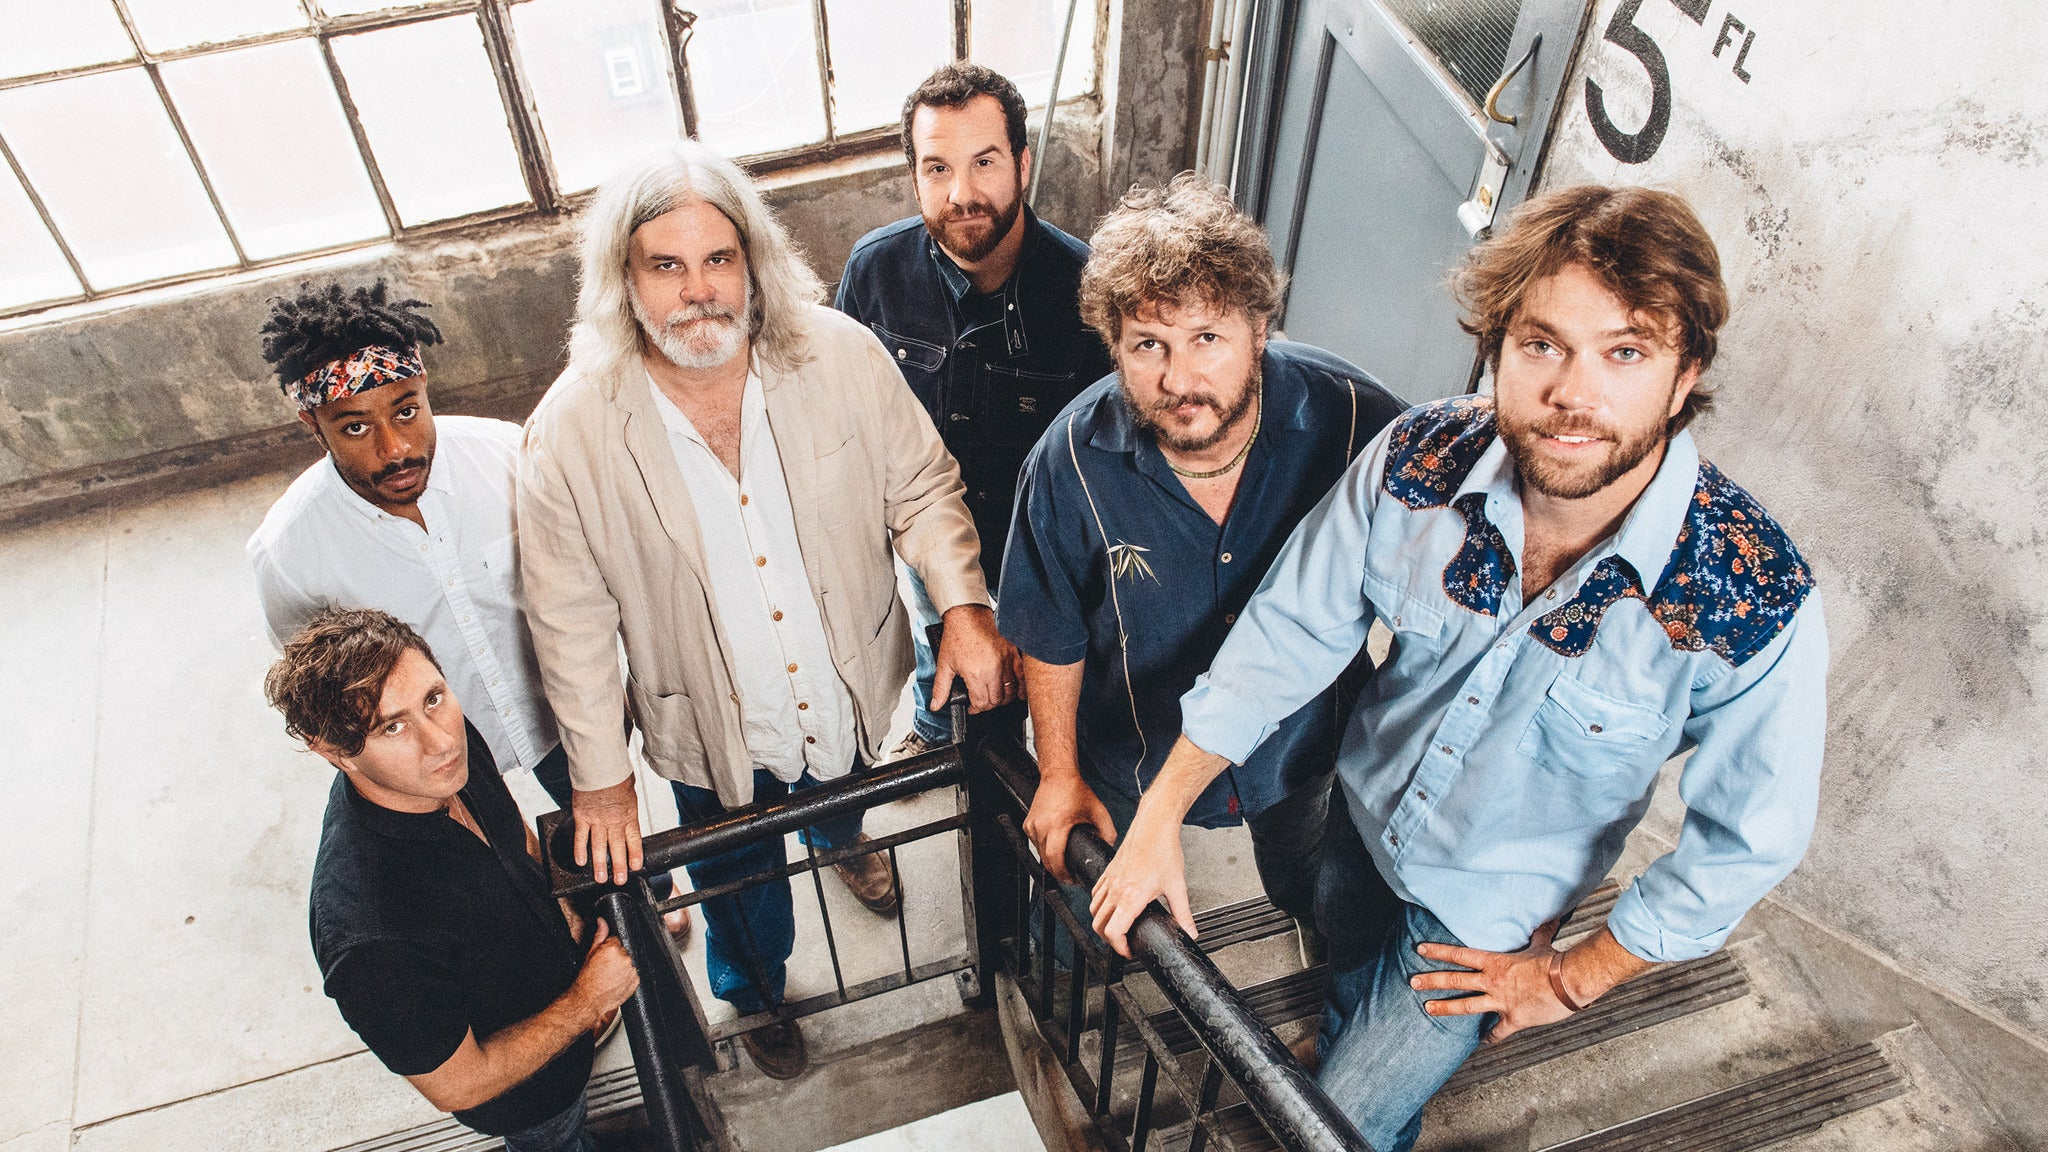 Leftover Salmon at Infinity Hall - Norfolk